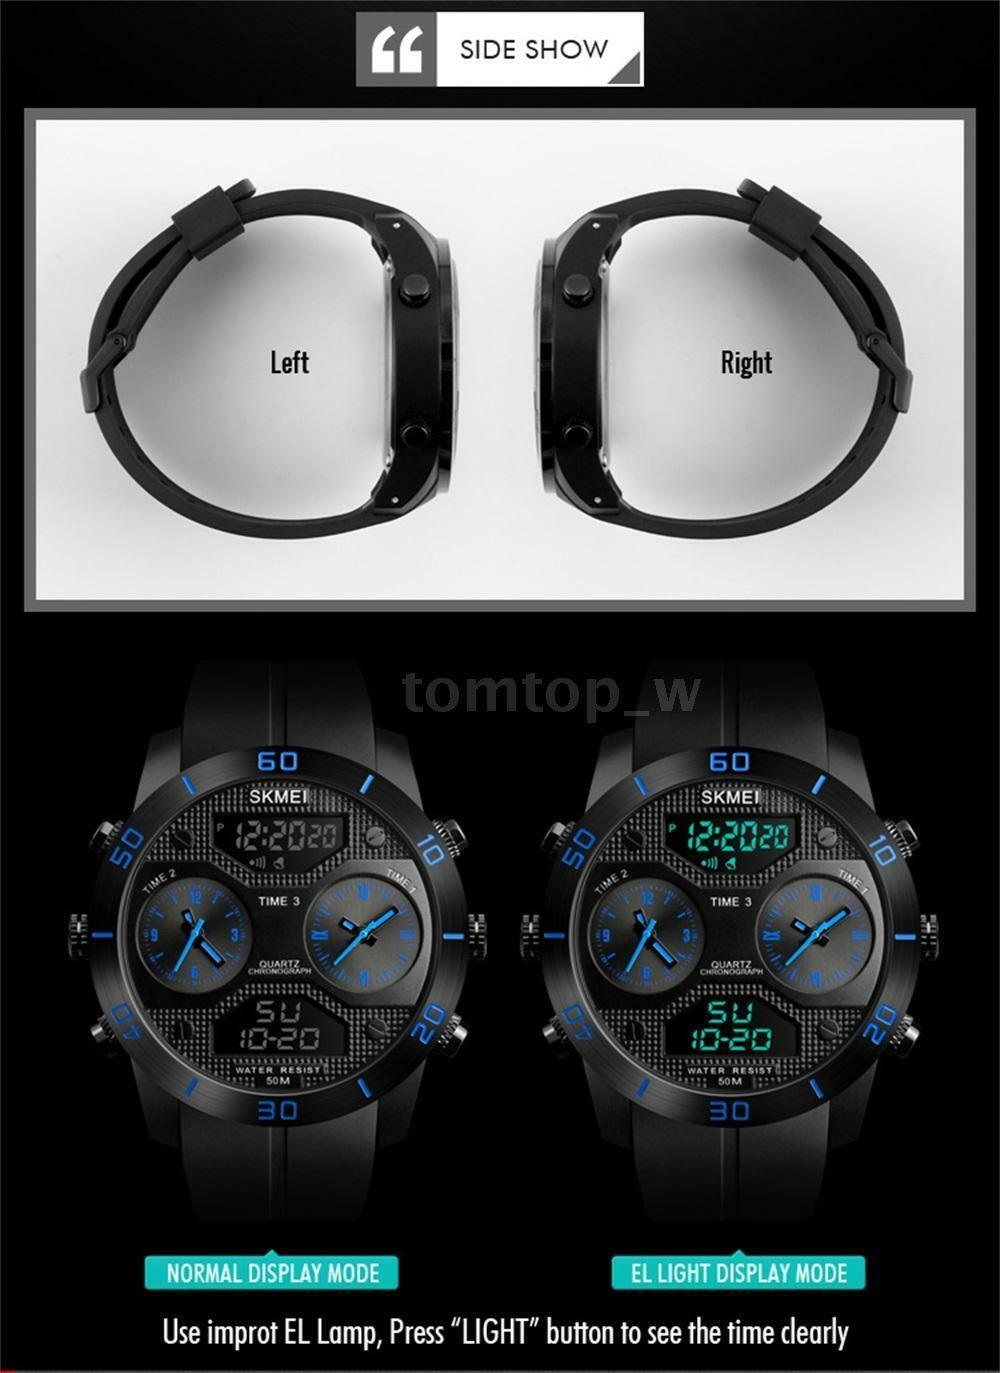 Skmei 1355 Waterproof Chronograph Digital Analog Watch (6)